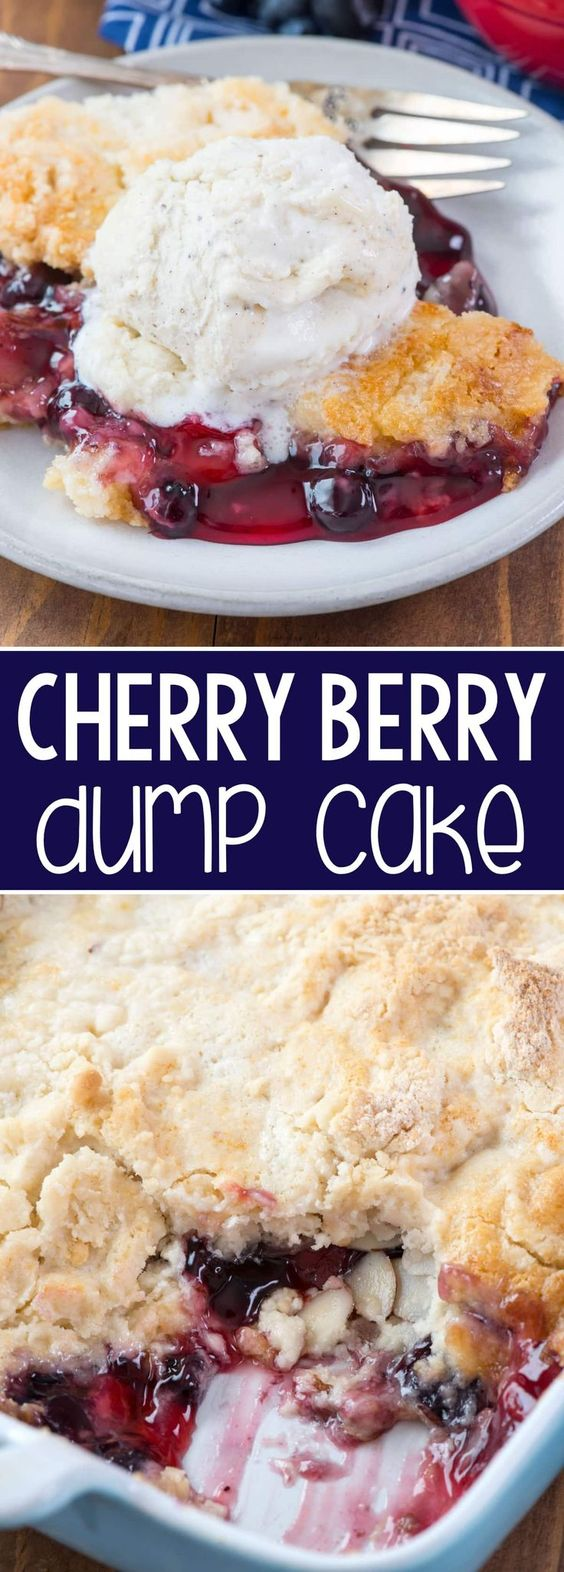 Cherry Berry Dump Cake Recipe